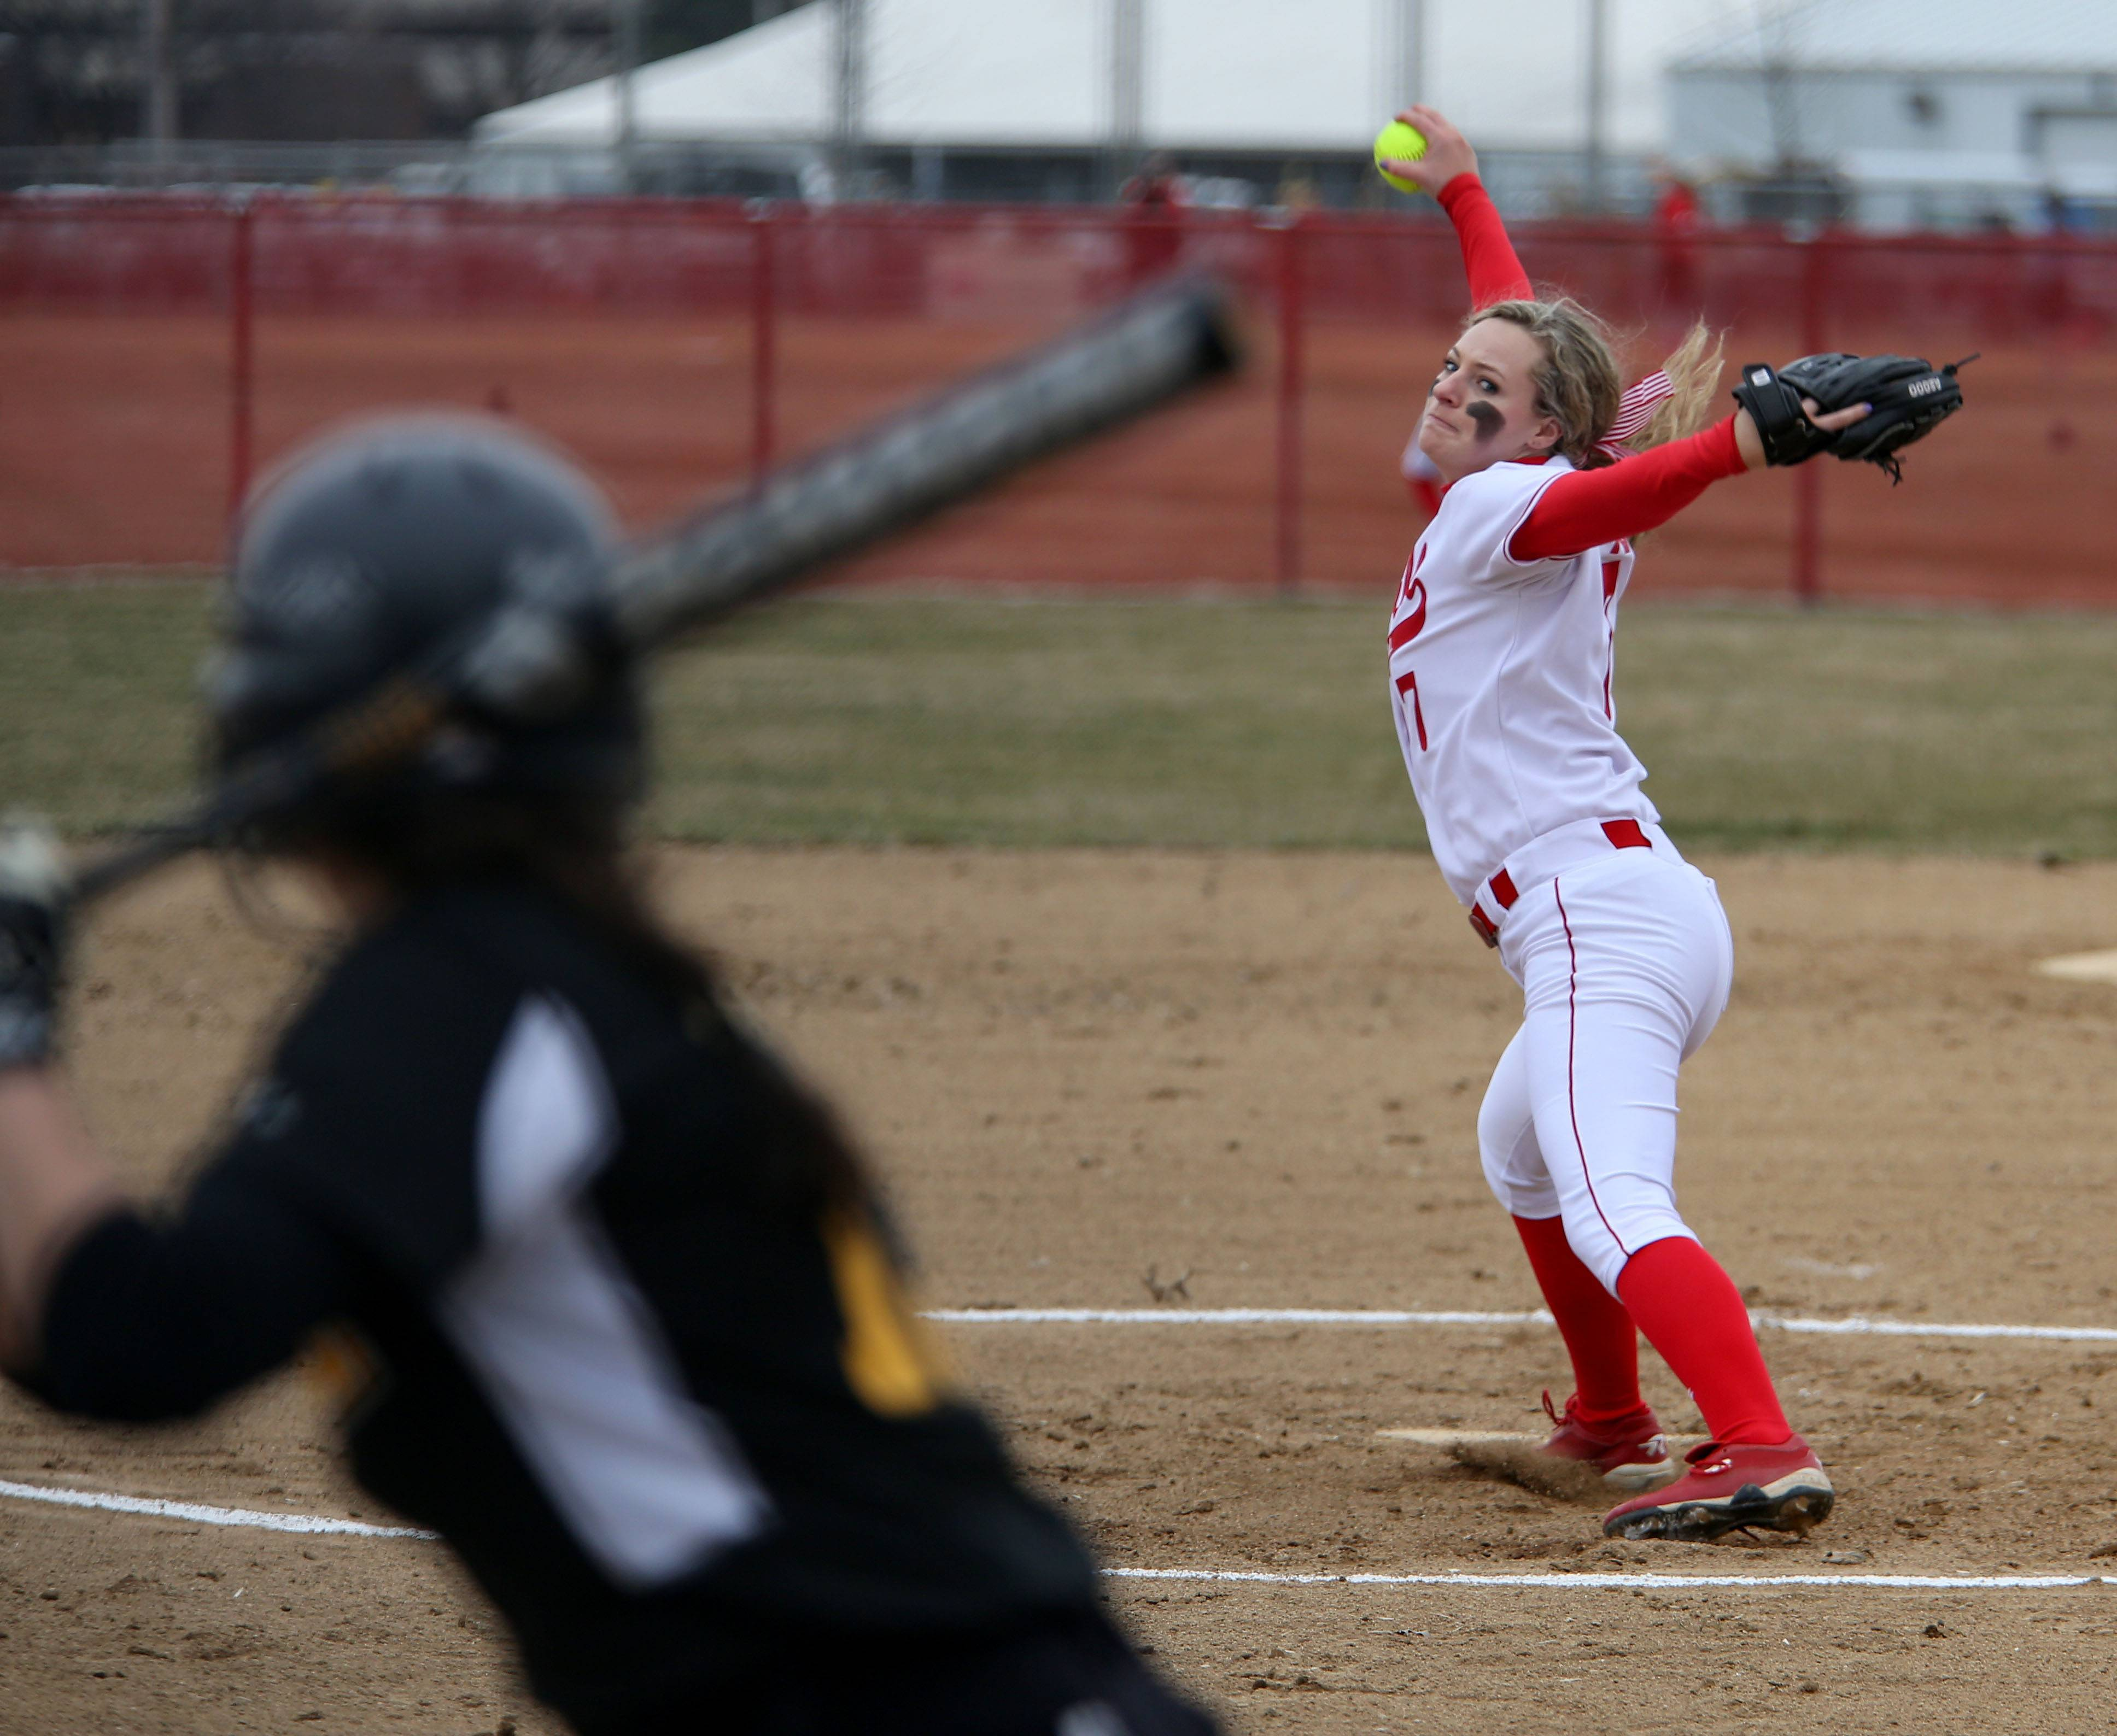 Naperviile Central's Keegan Hayes winds up her pitch against Hinsdale South during softball on Monday in Naperville.